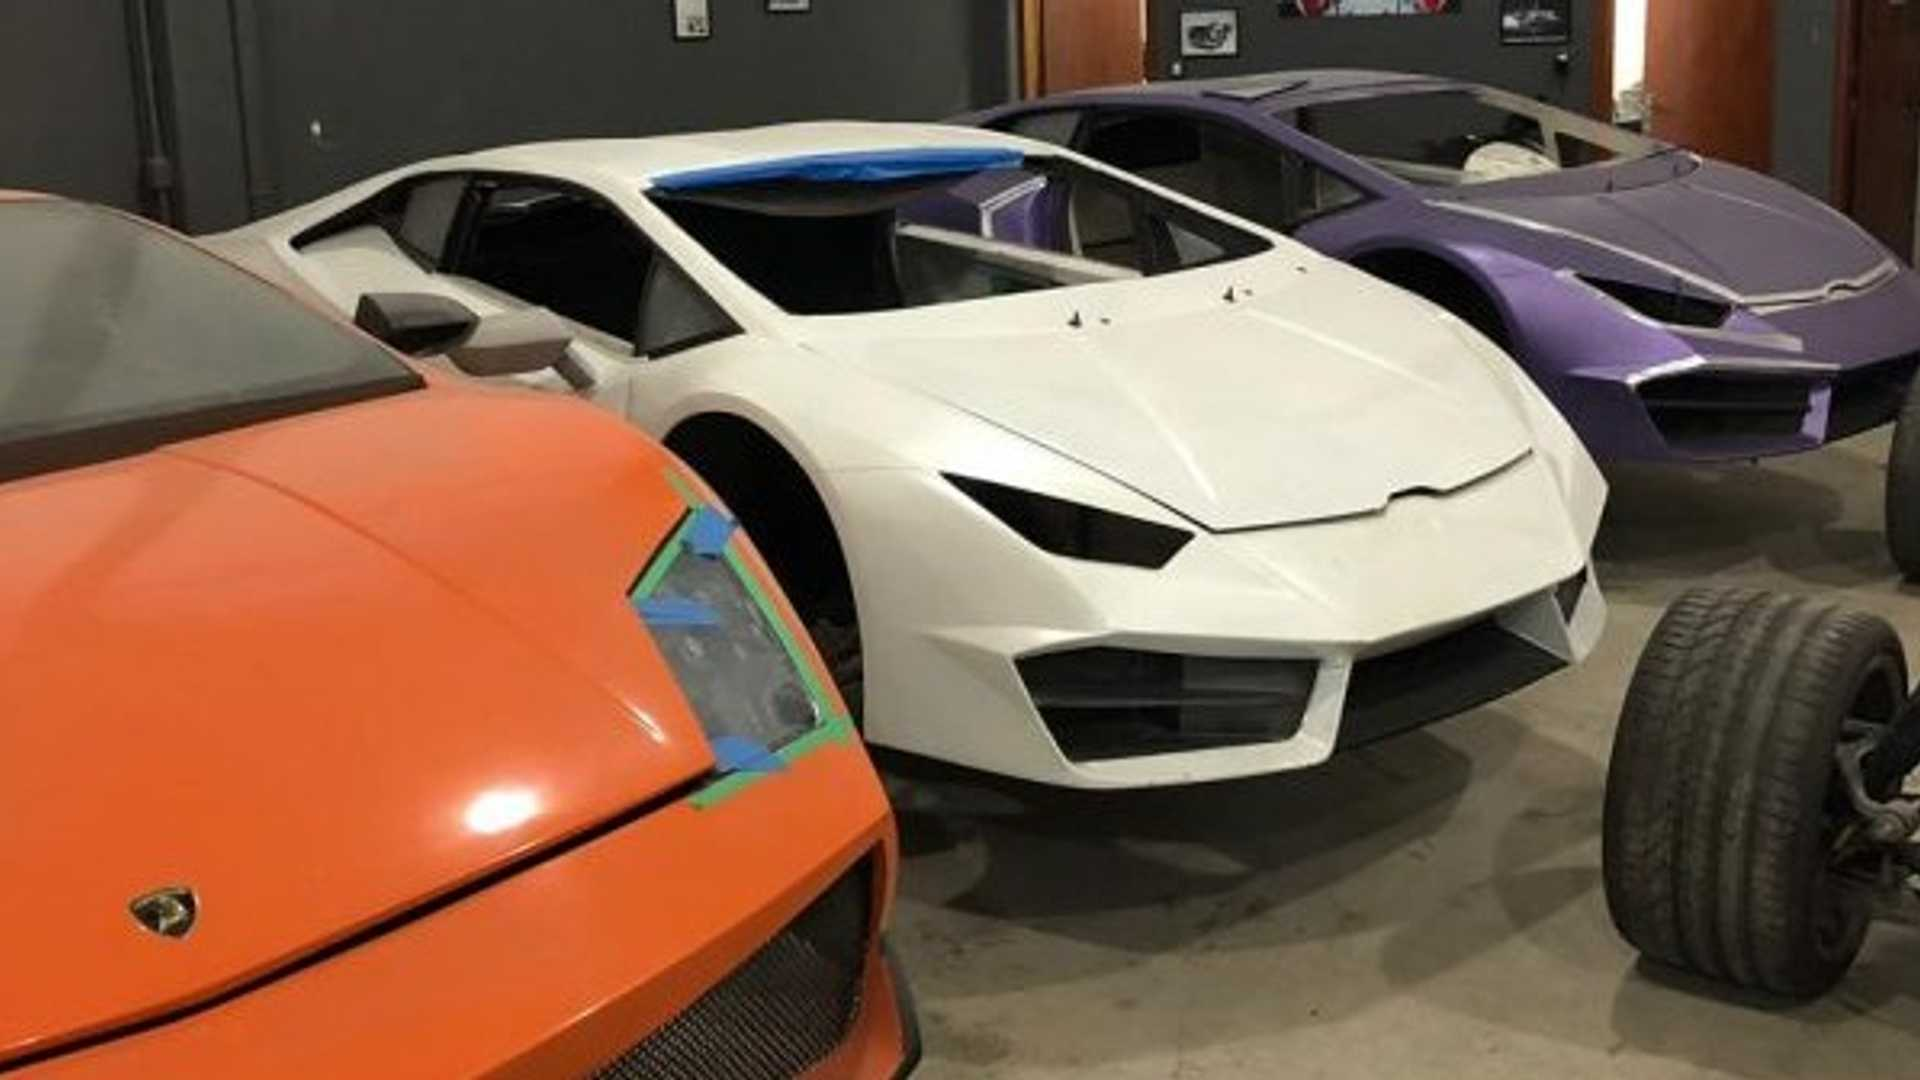 Phony Fauxrrari and Shamborghini replicas seized in Brazil